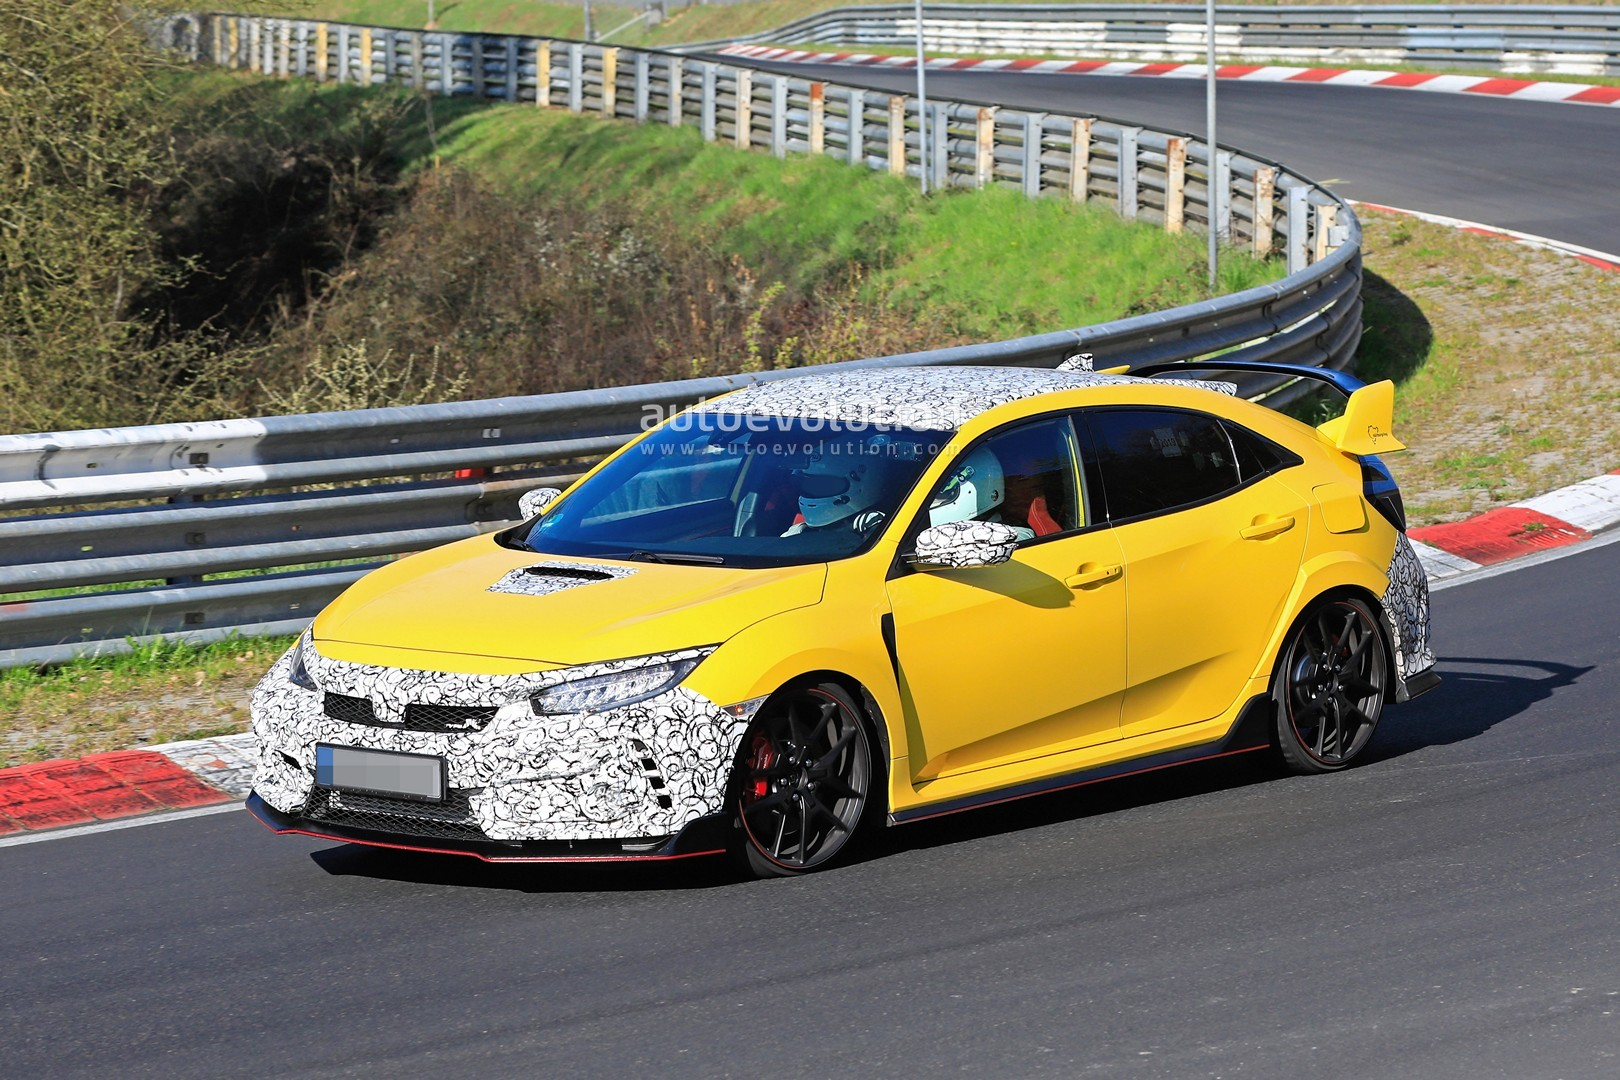 2020 Honda Civic Type R Prototypes Spied At The Nurburgring Autoevolution